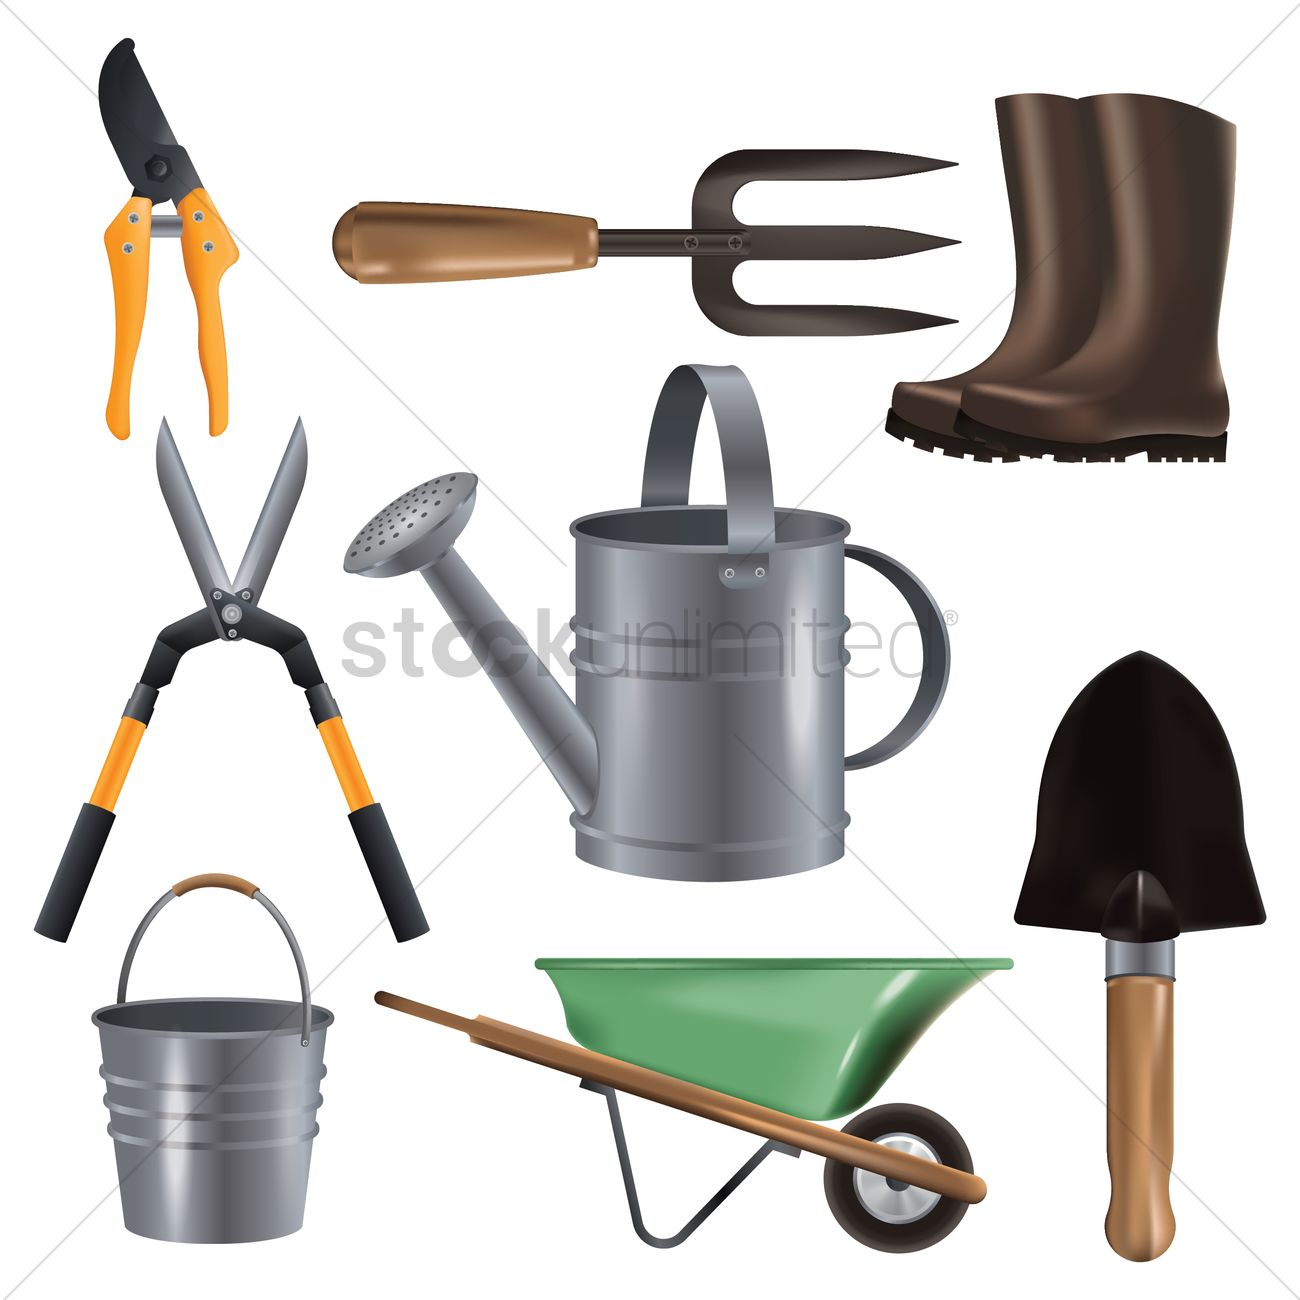 Collection of garden equipments Vector Image - 1895408 | StockUnlimited